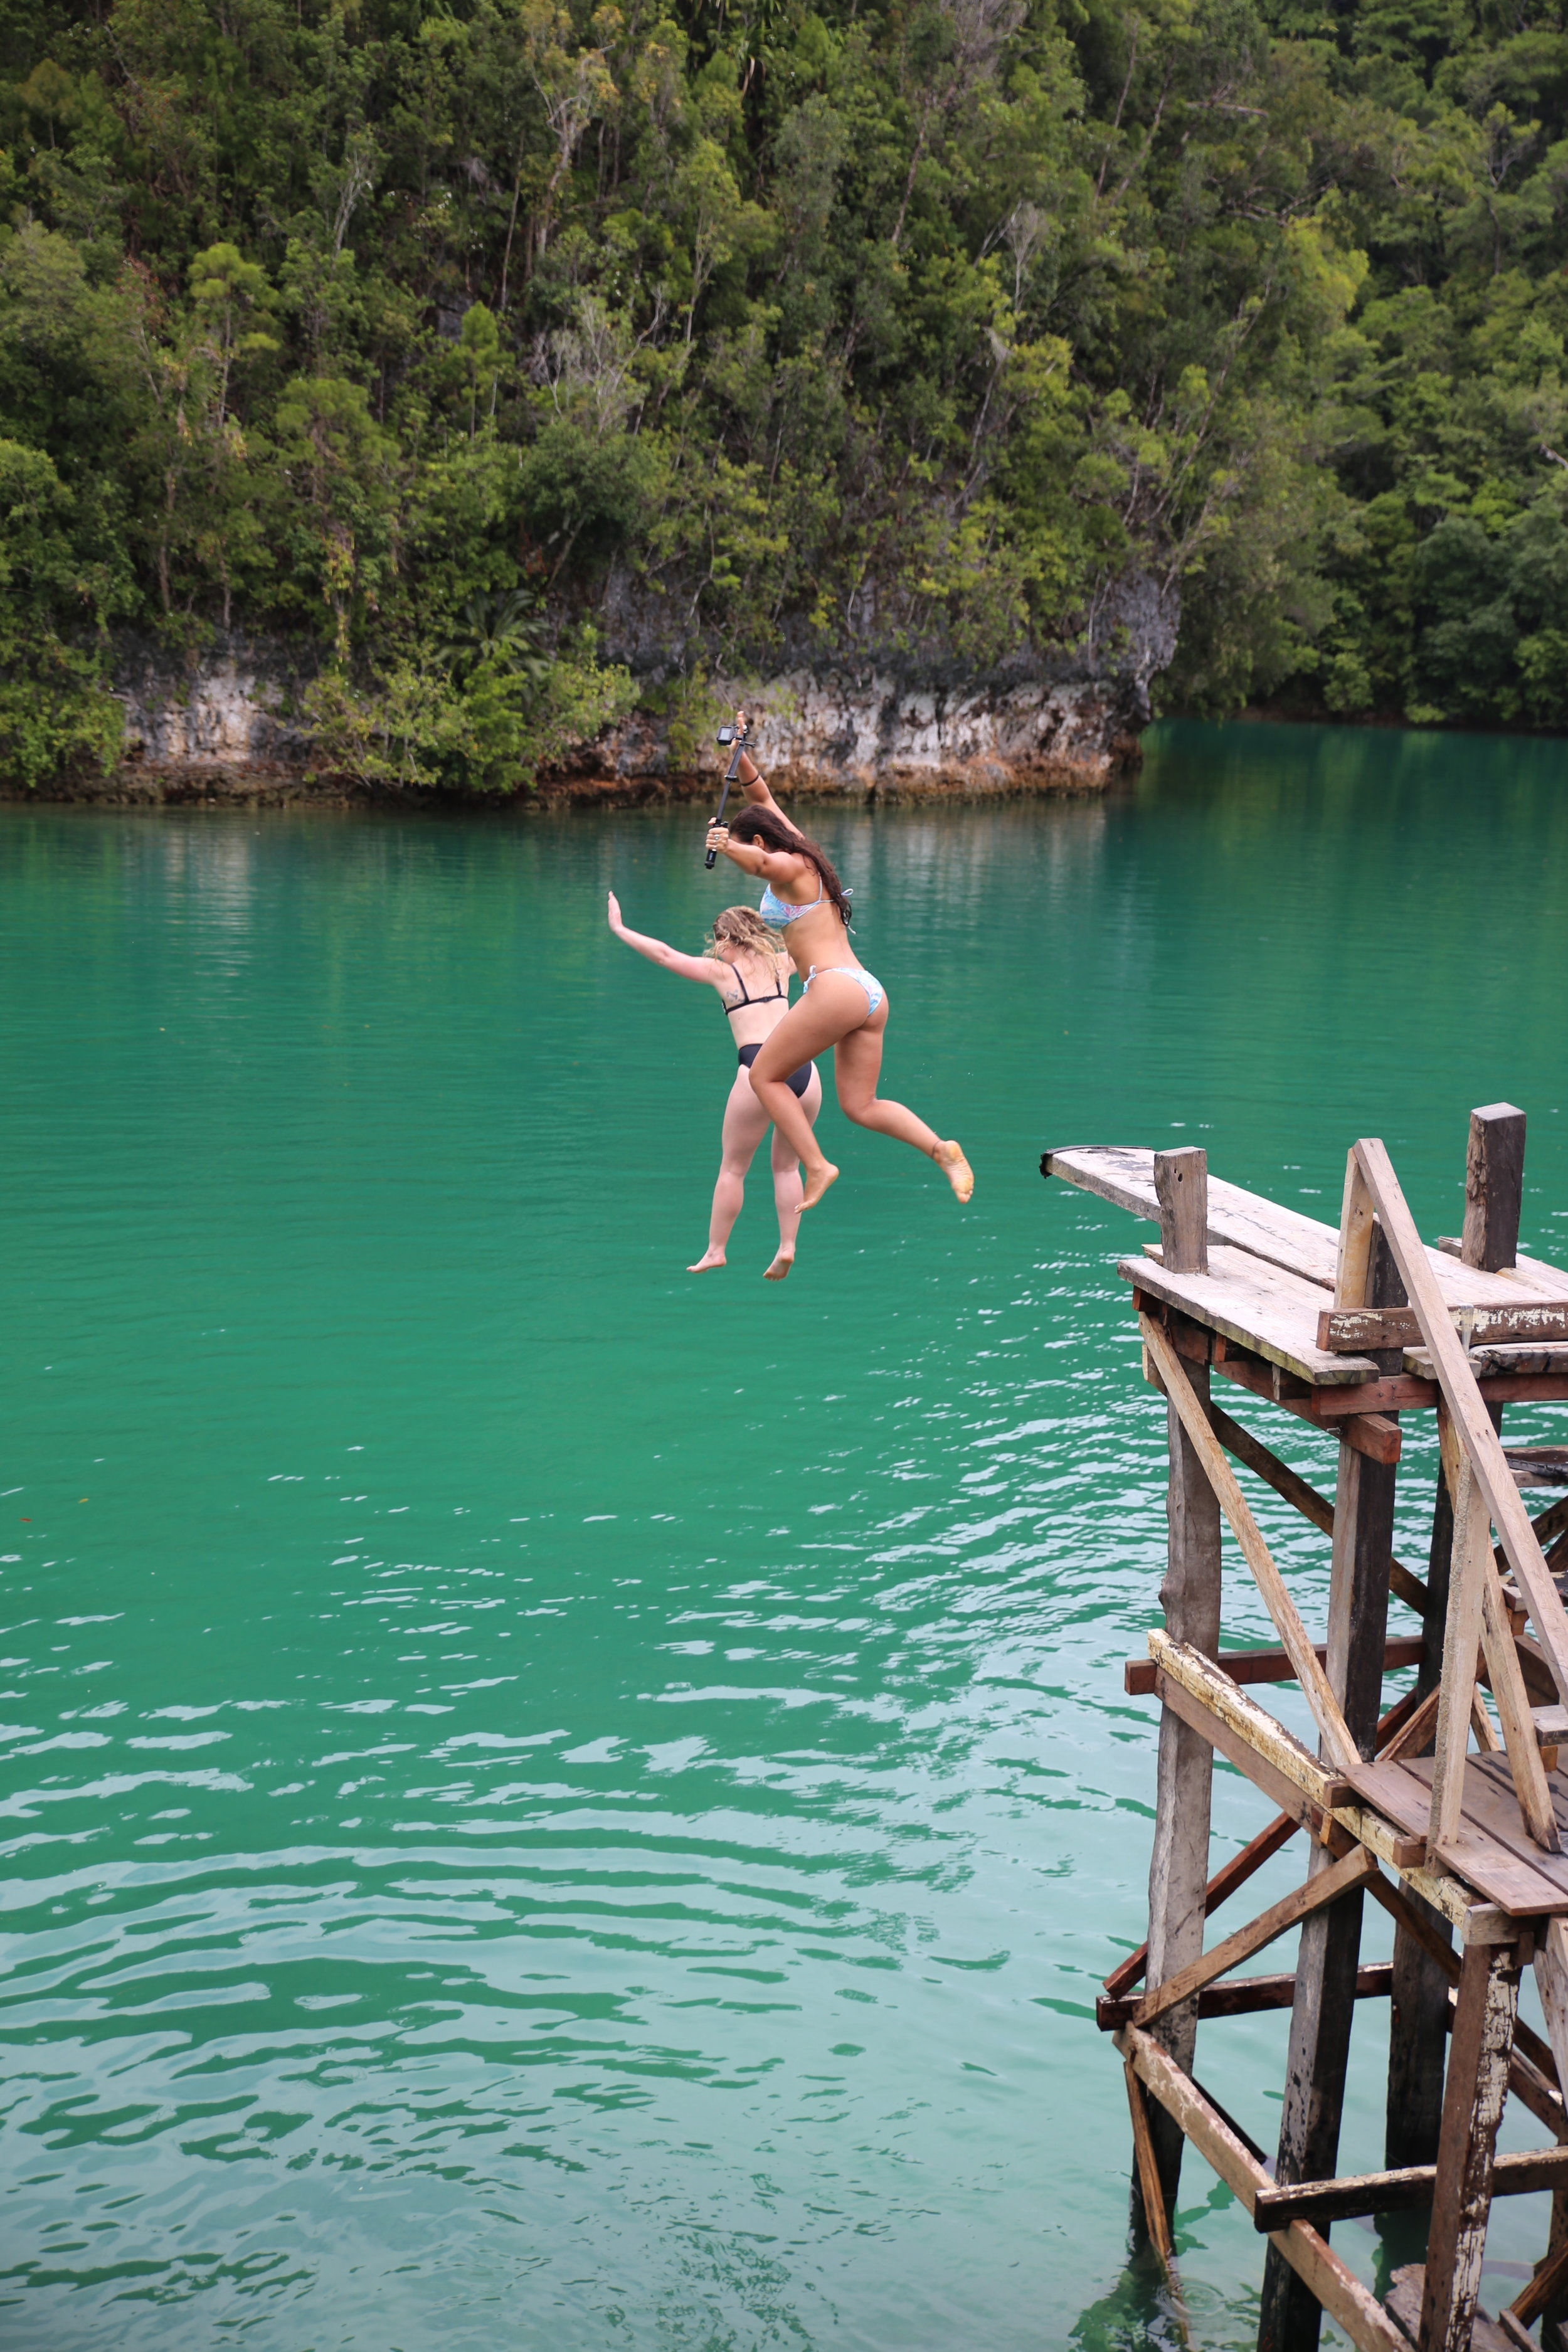 sugba lagoon jumping in the water